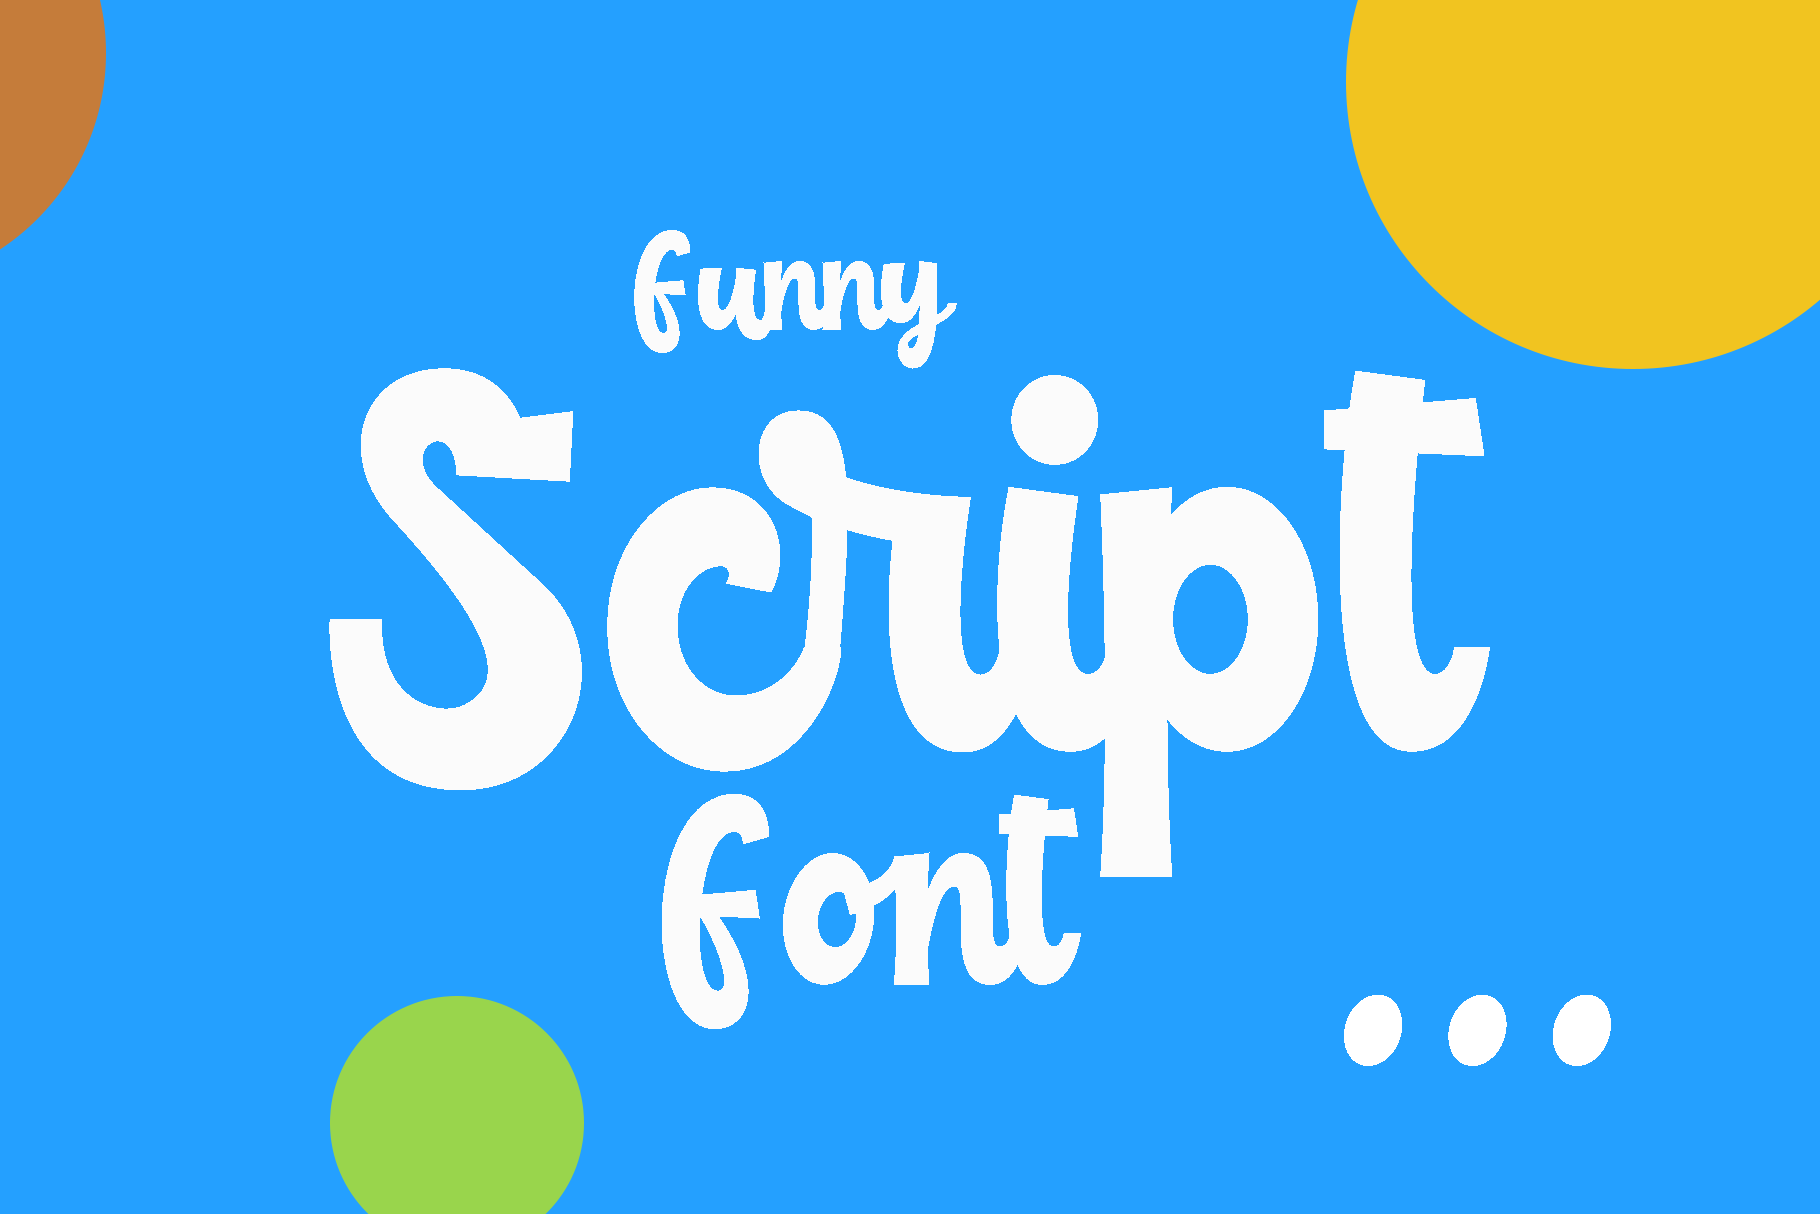 Childish -funny script font example image 2